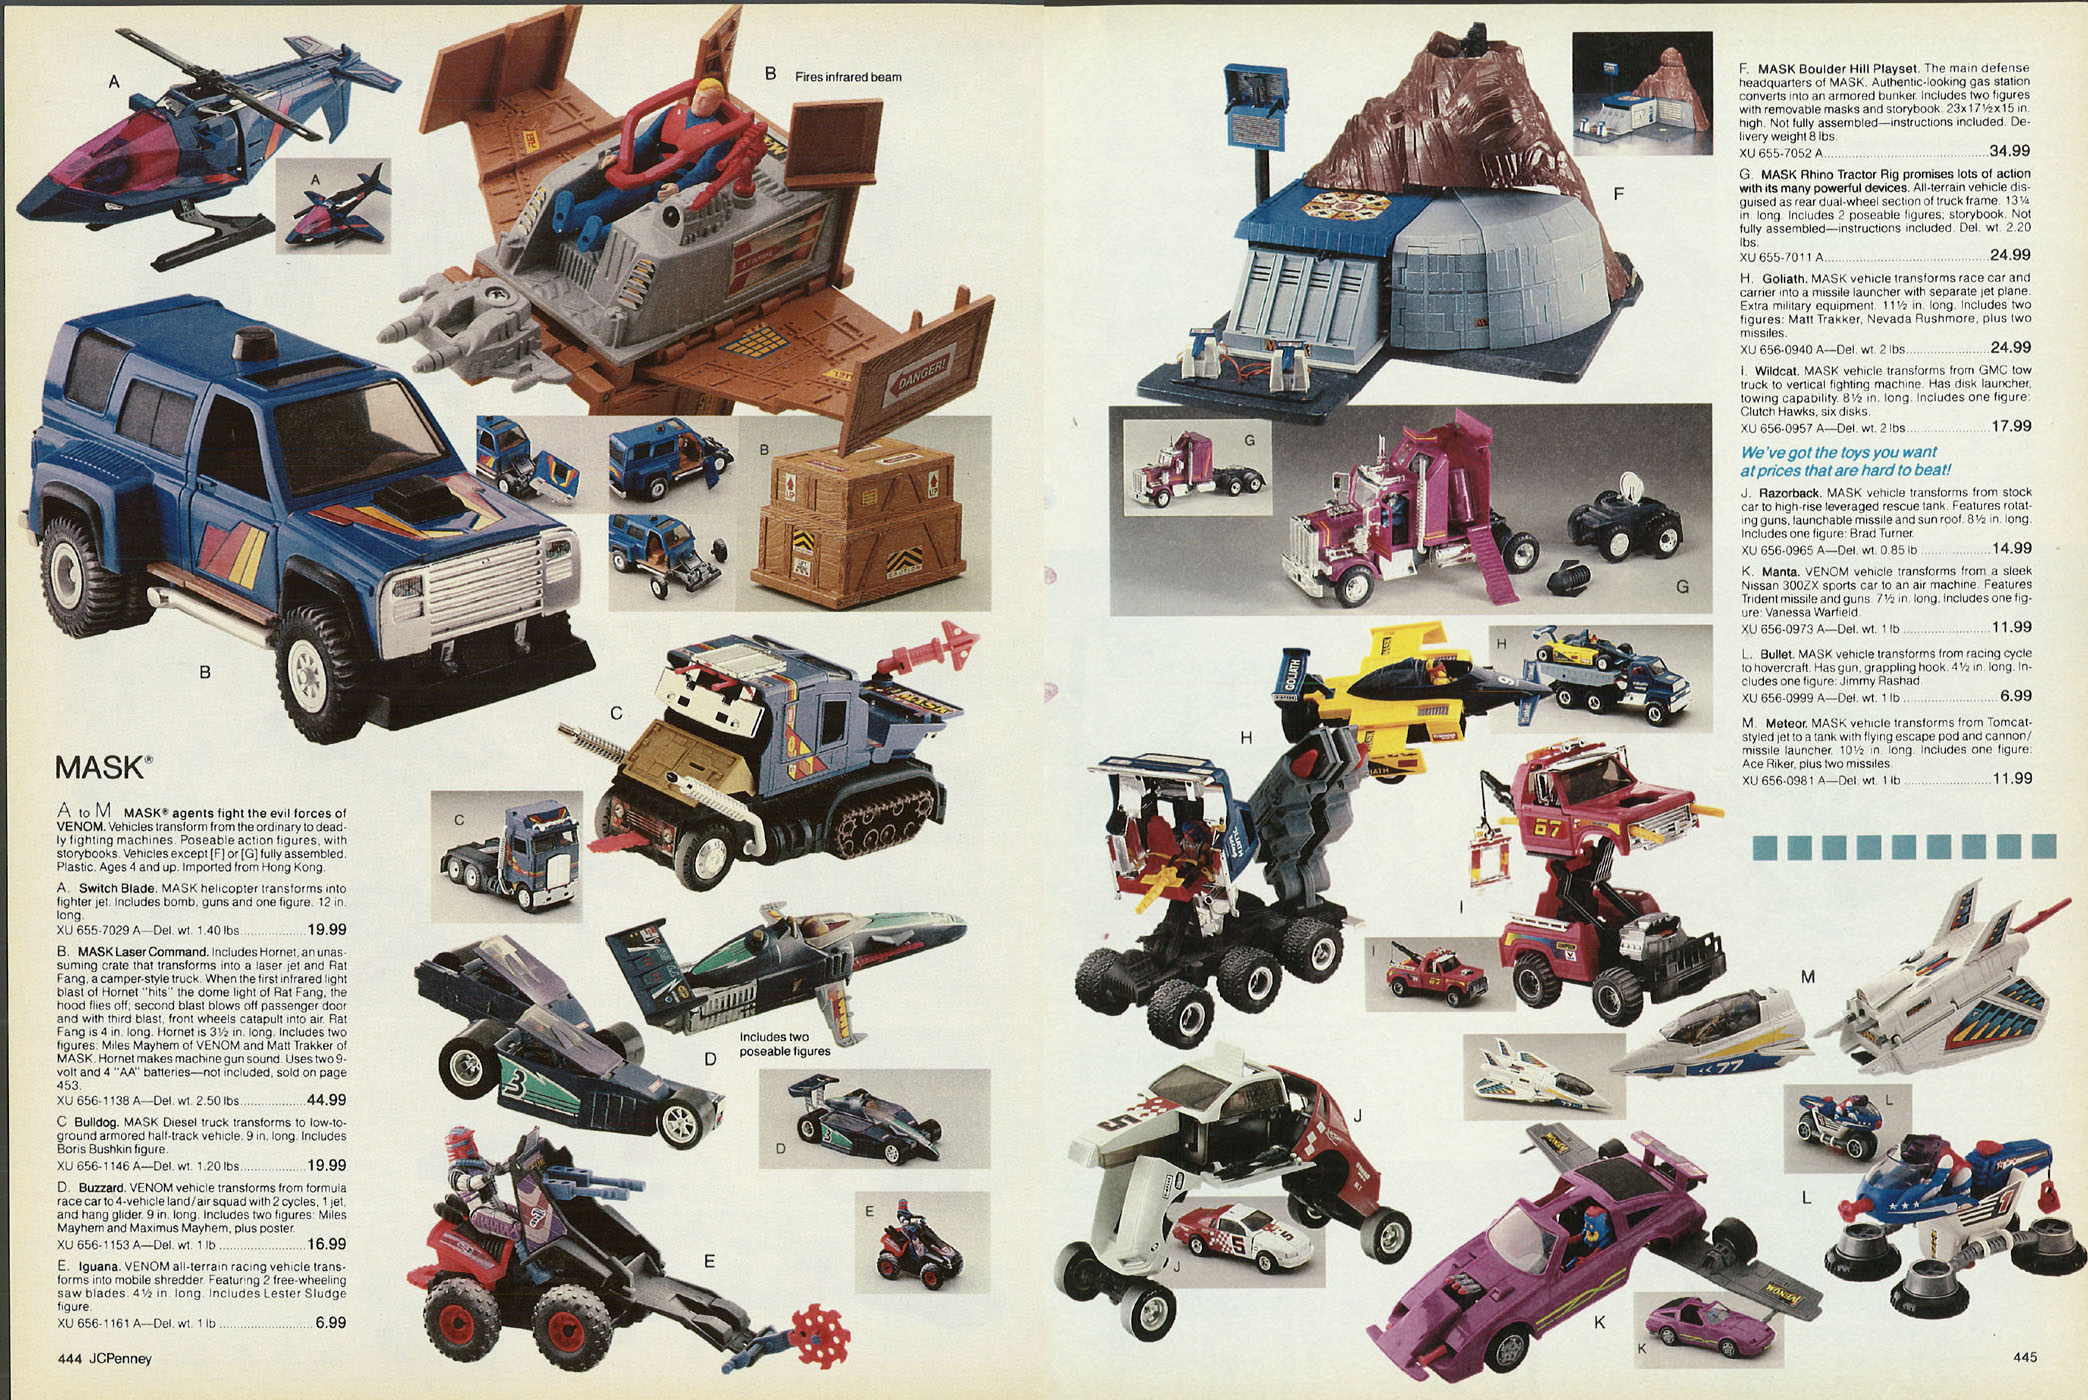 Kenner's M A S K  in the 1987 JC Penny Christmas Catalog